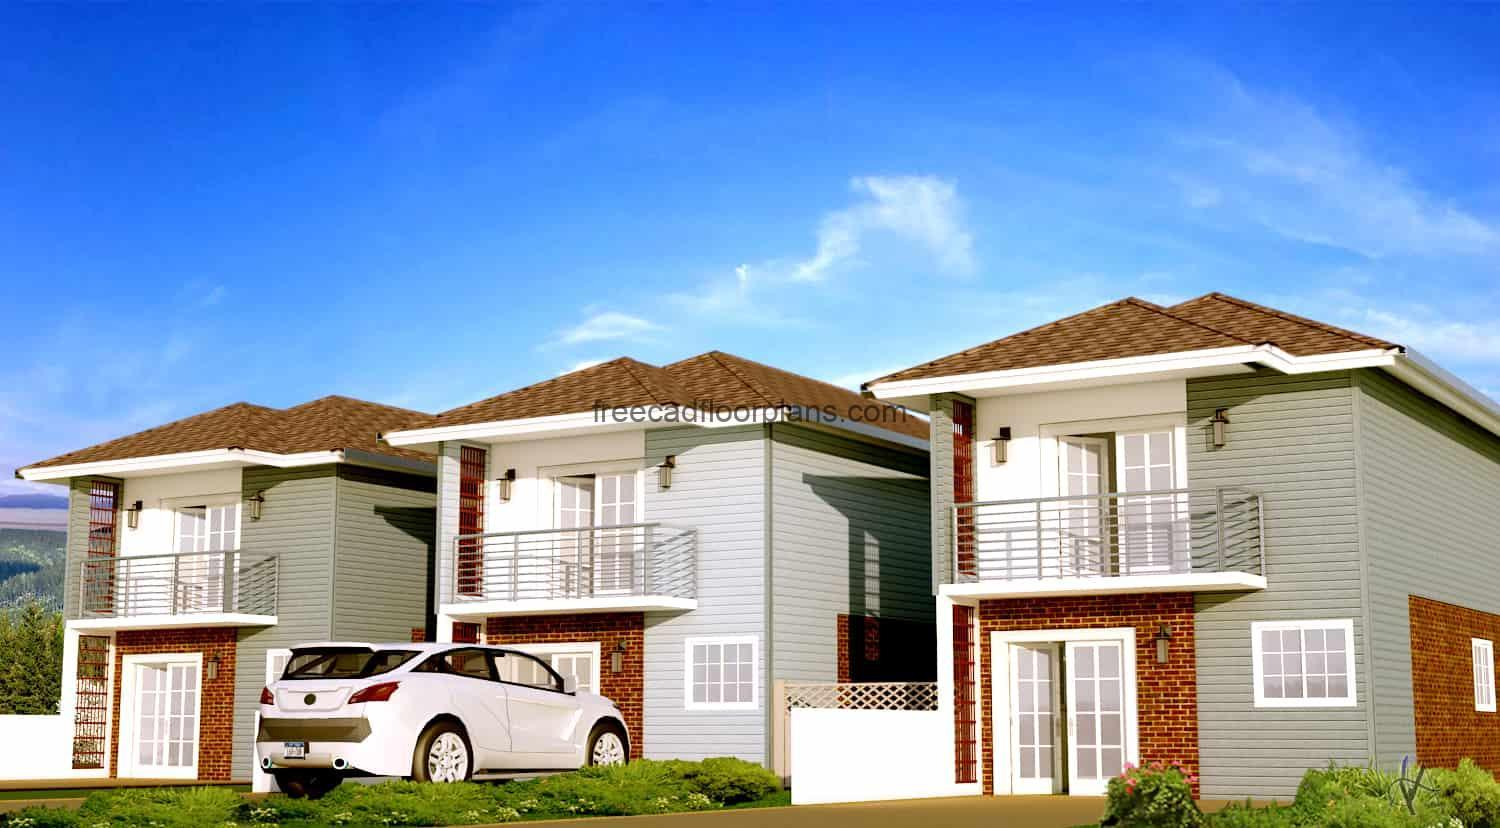 Architectural project of a small two-storey townhouse made of wood and brick blocks, plans in DWG Autocad format